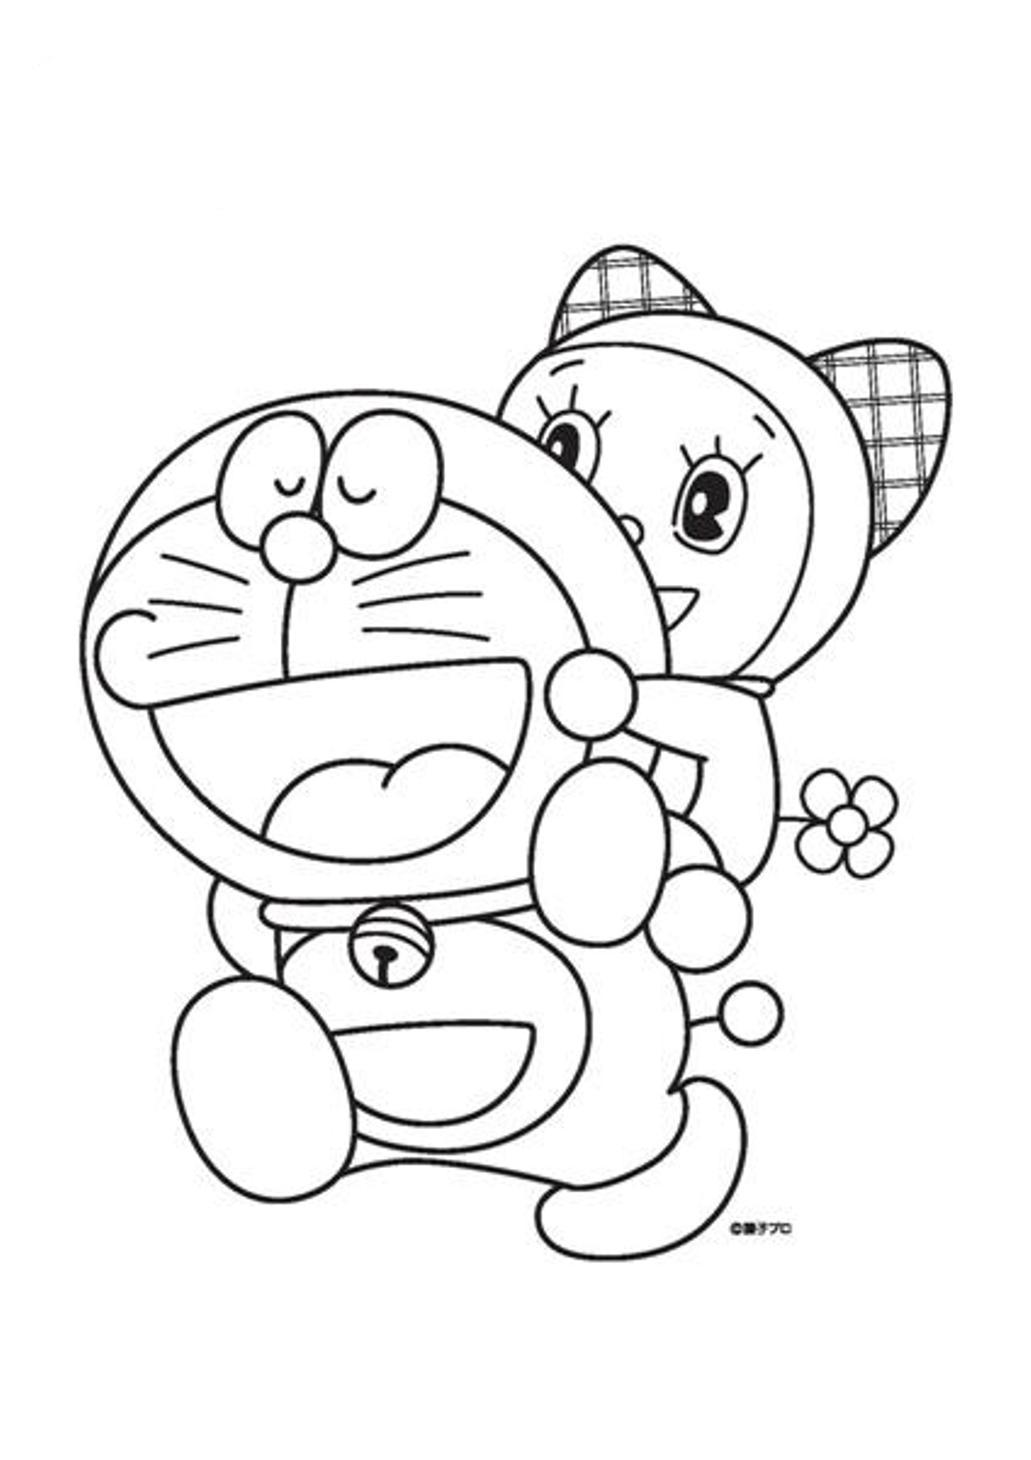 kids coloring pages doraemon,printable,coloring pages